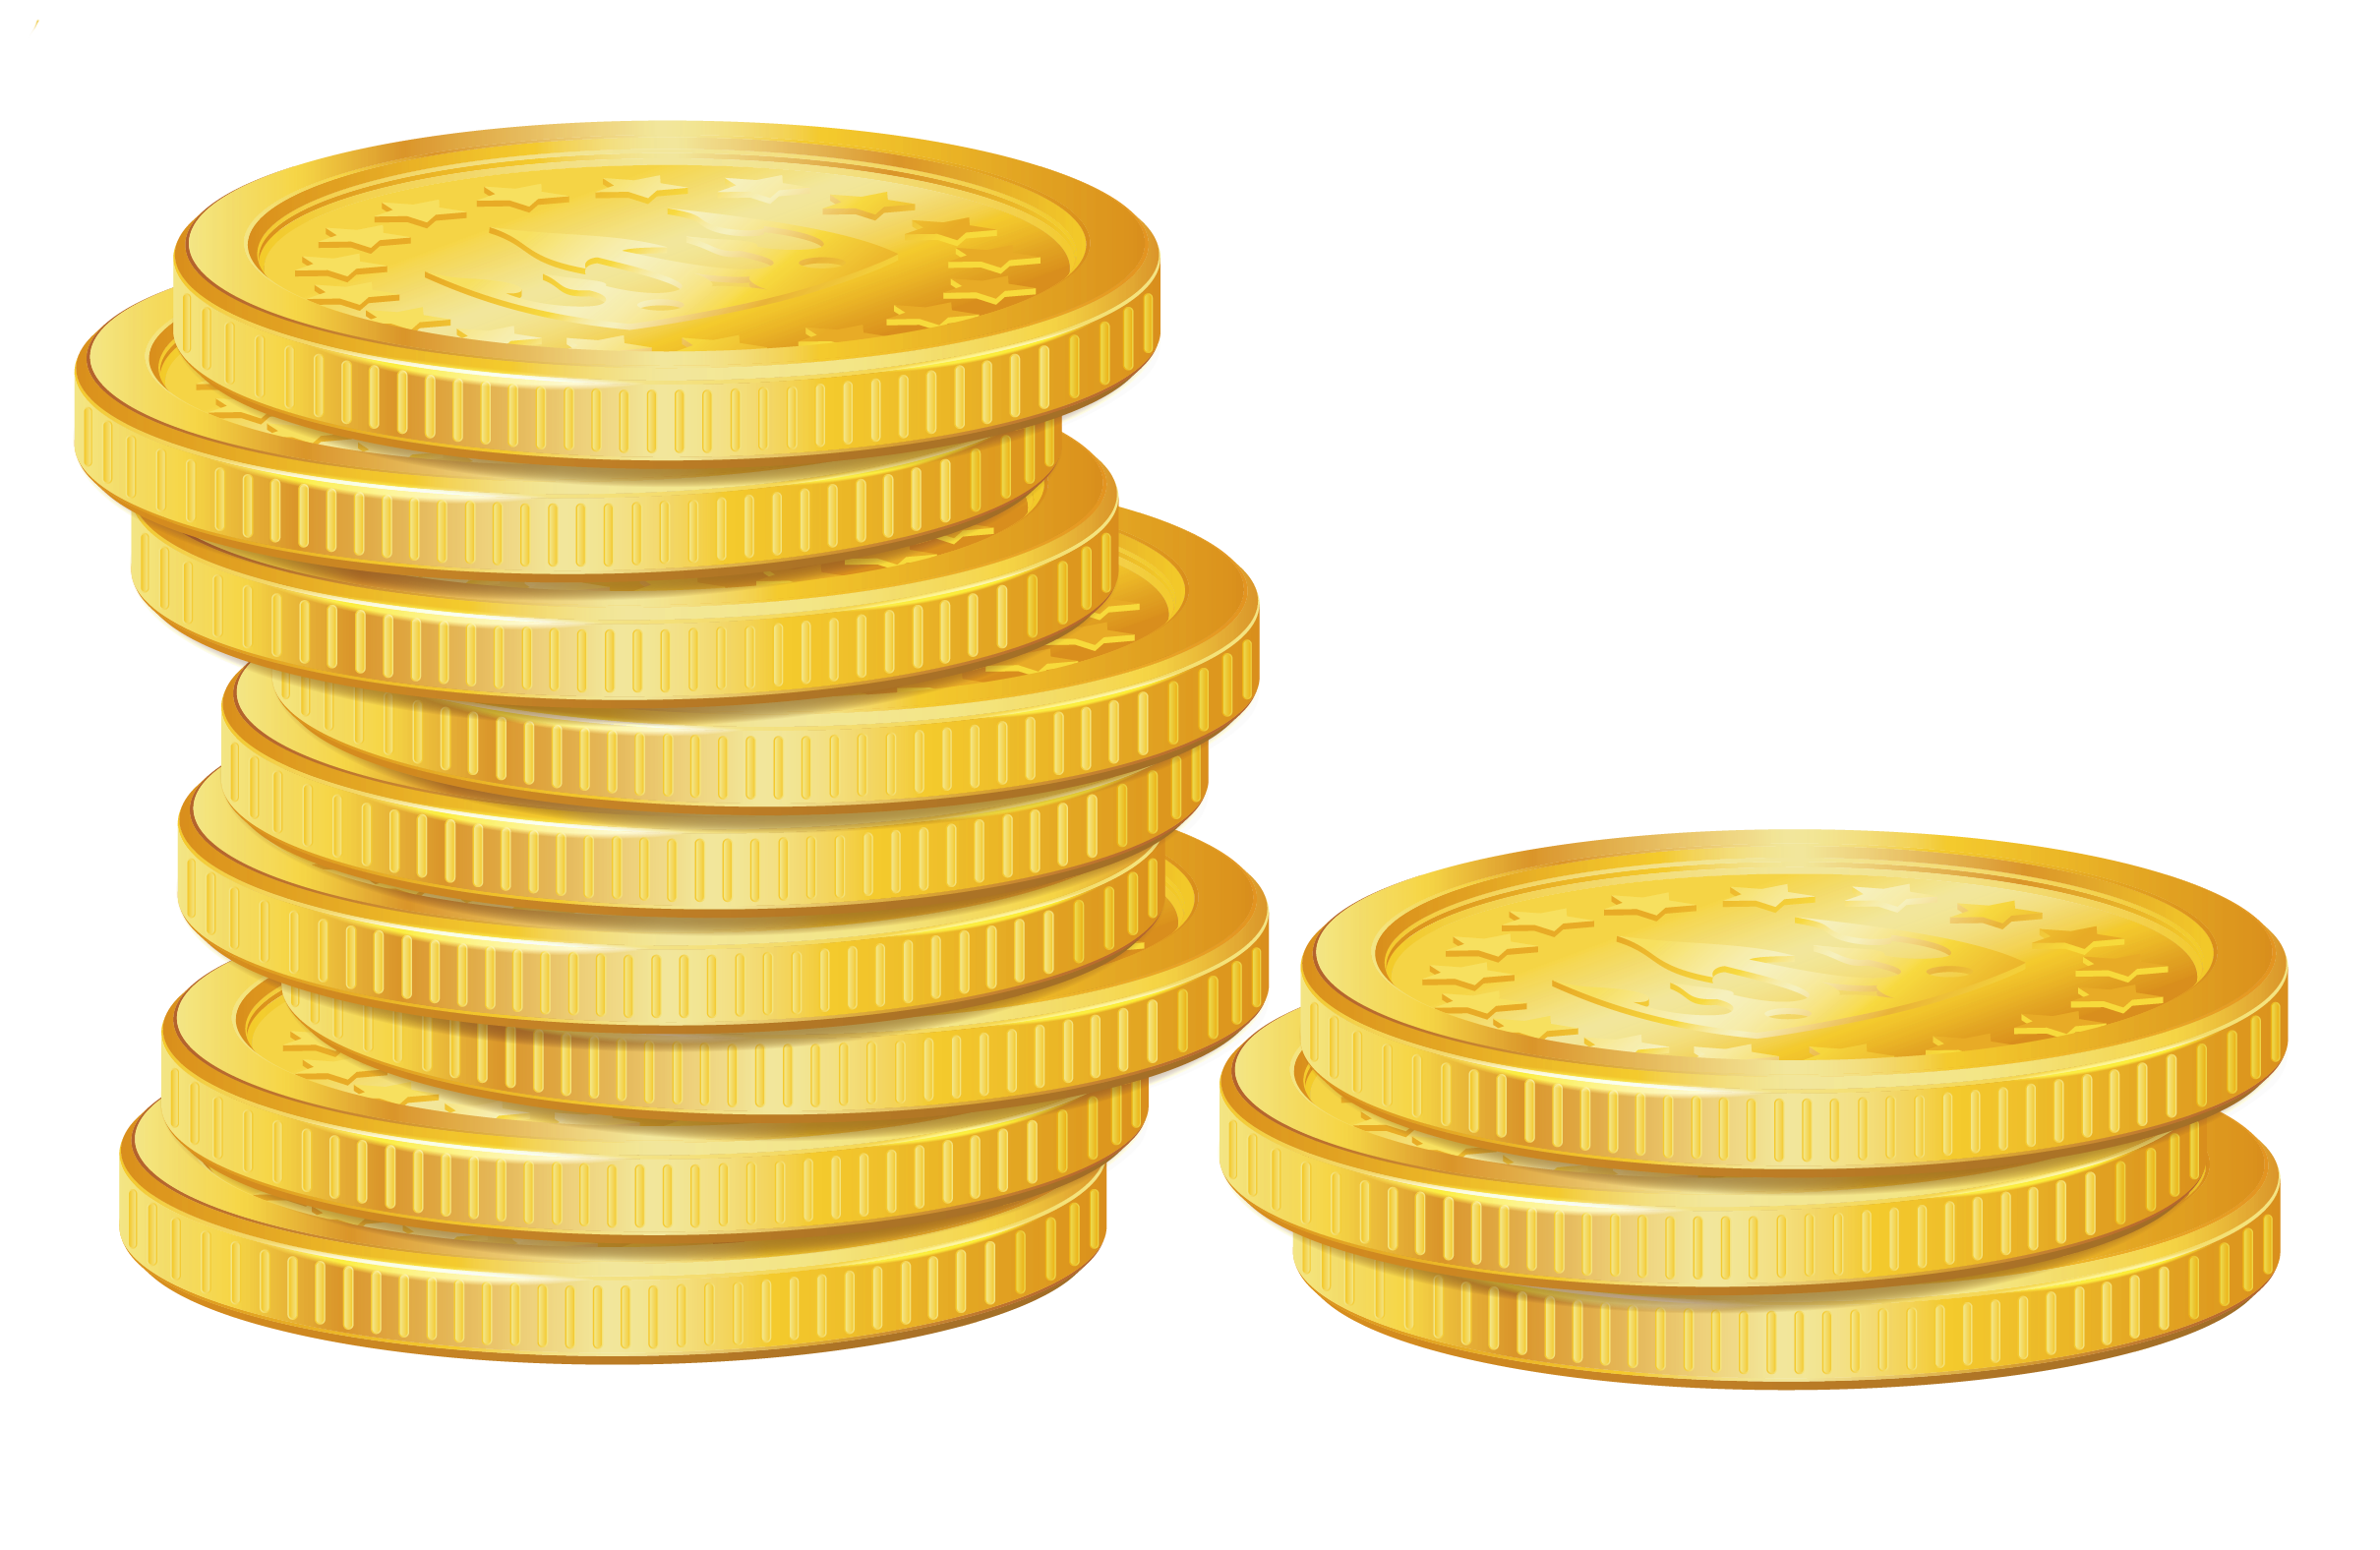 free-coin-clip-art-302589.png